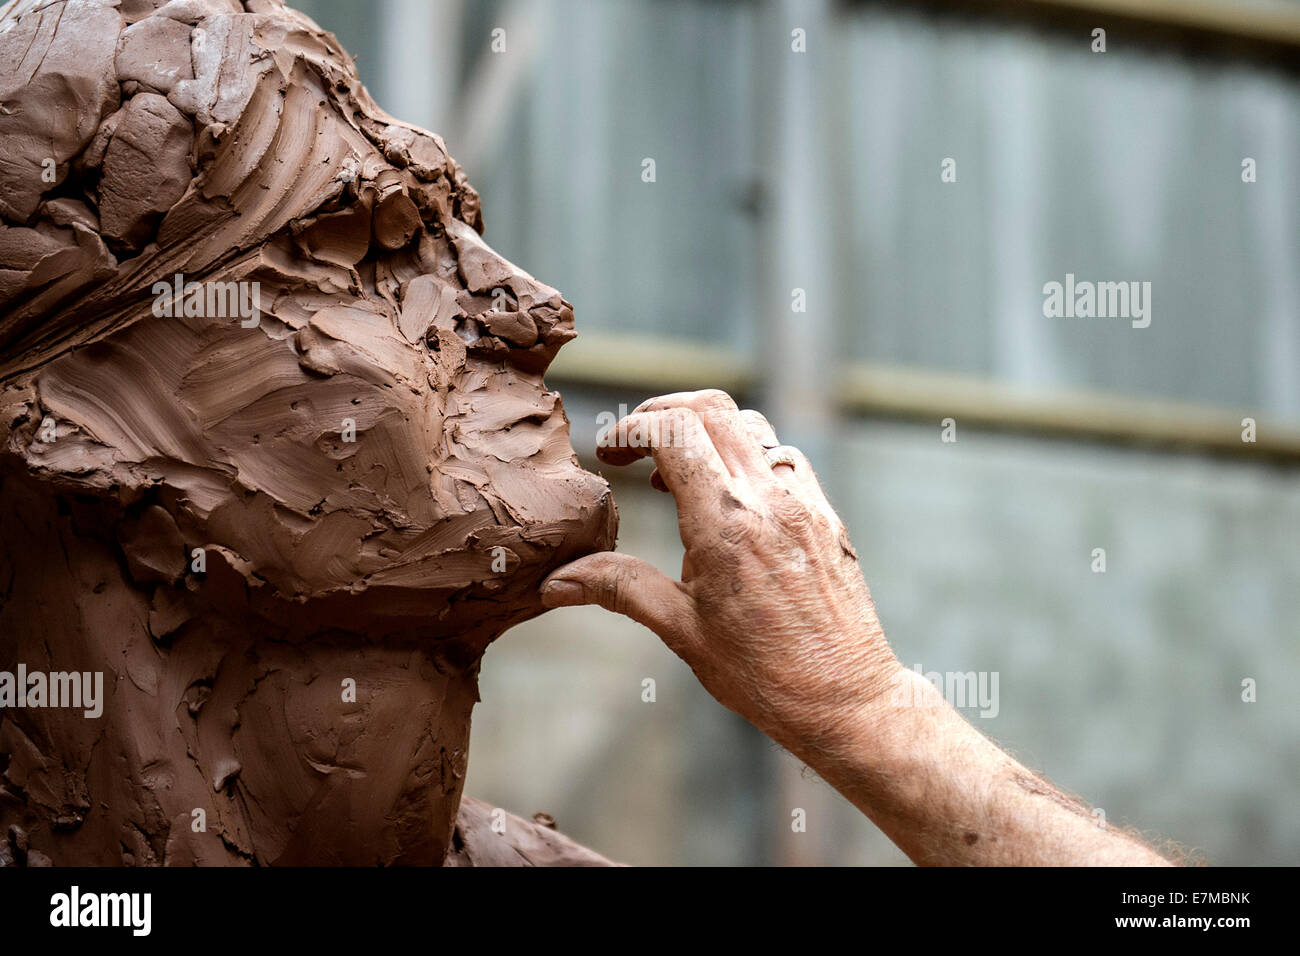 Colin Caffell, a sculptor working on his Tin Mining Memorial sculpture. - Stock Image